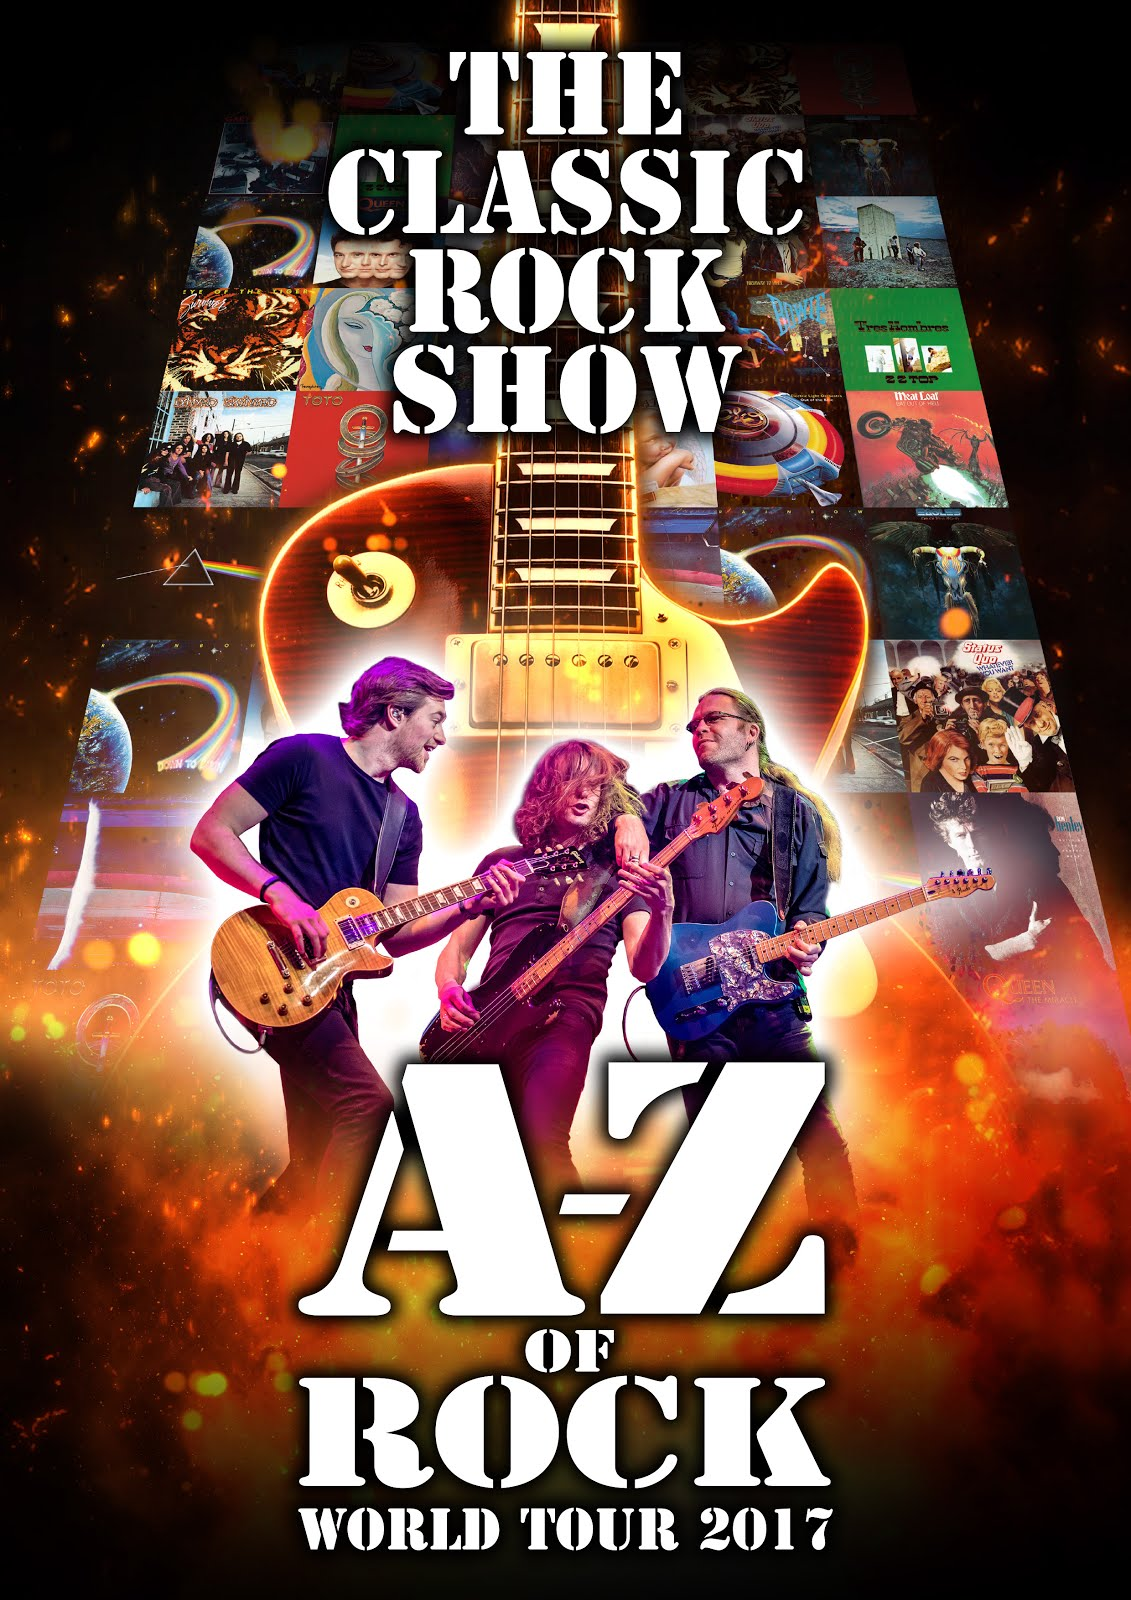 For Info on The Classic Rock Show